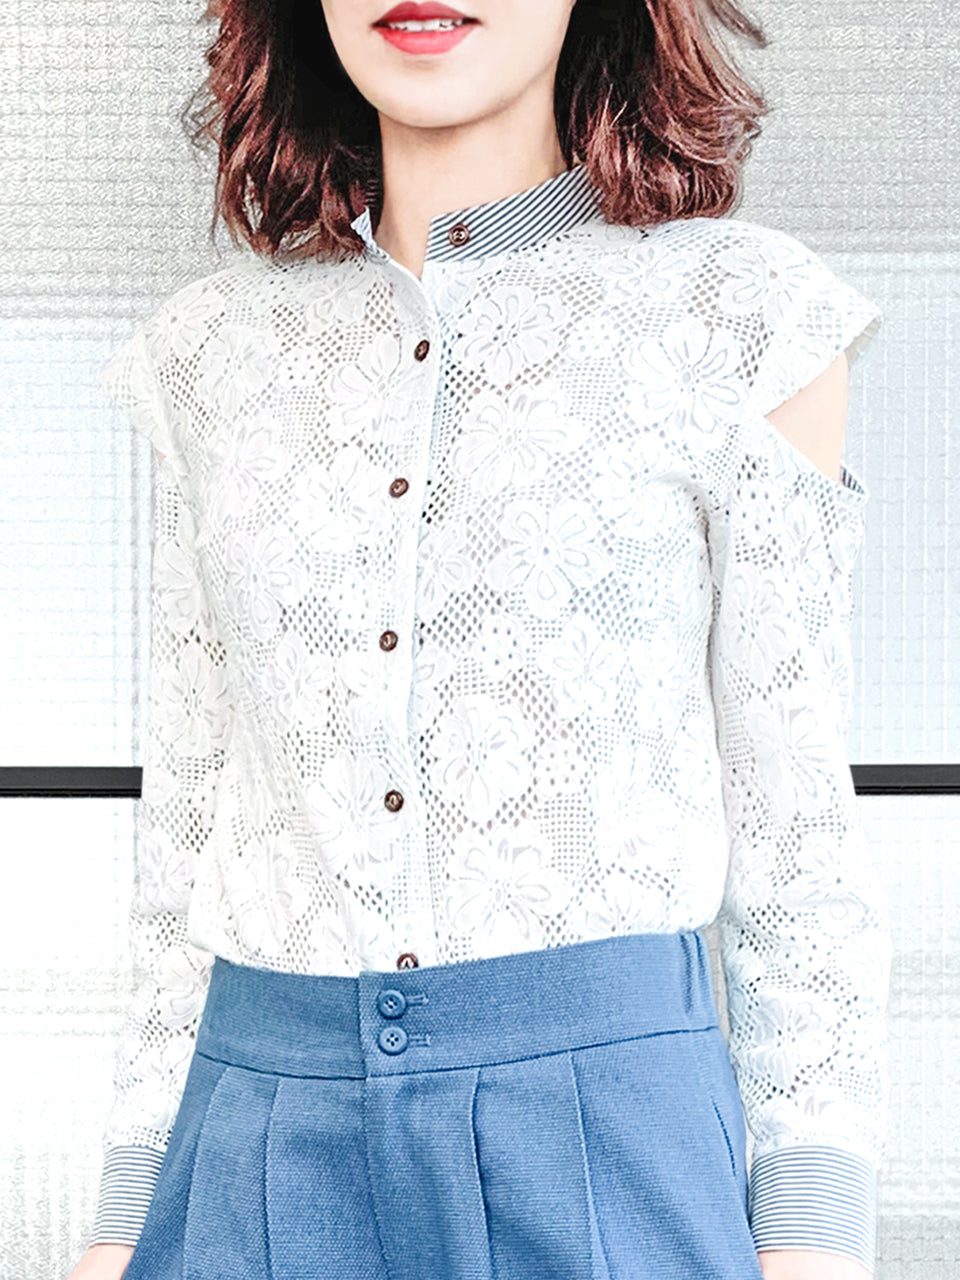 Surprise Sale! White Embroidery Floral Lace Cold Shoulder Stand Collar Shirt